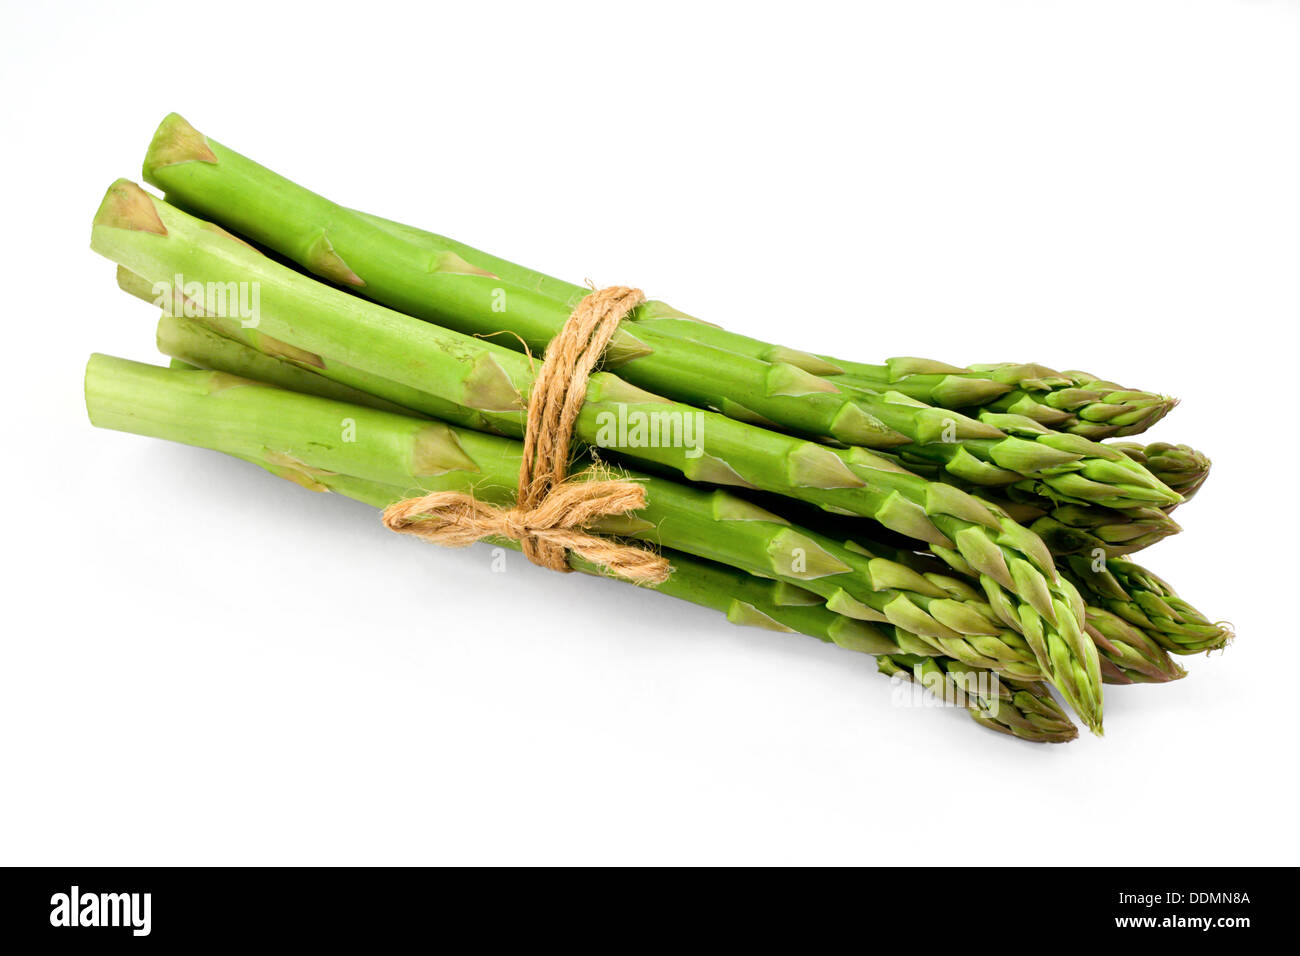 Asparagus bunch a premium seasonal vegetable isolated on a white background with light shadow - Stock Image